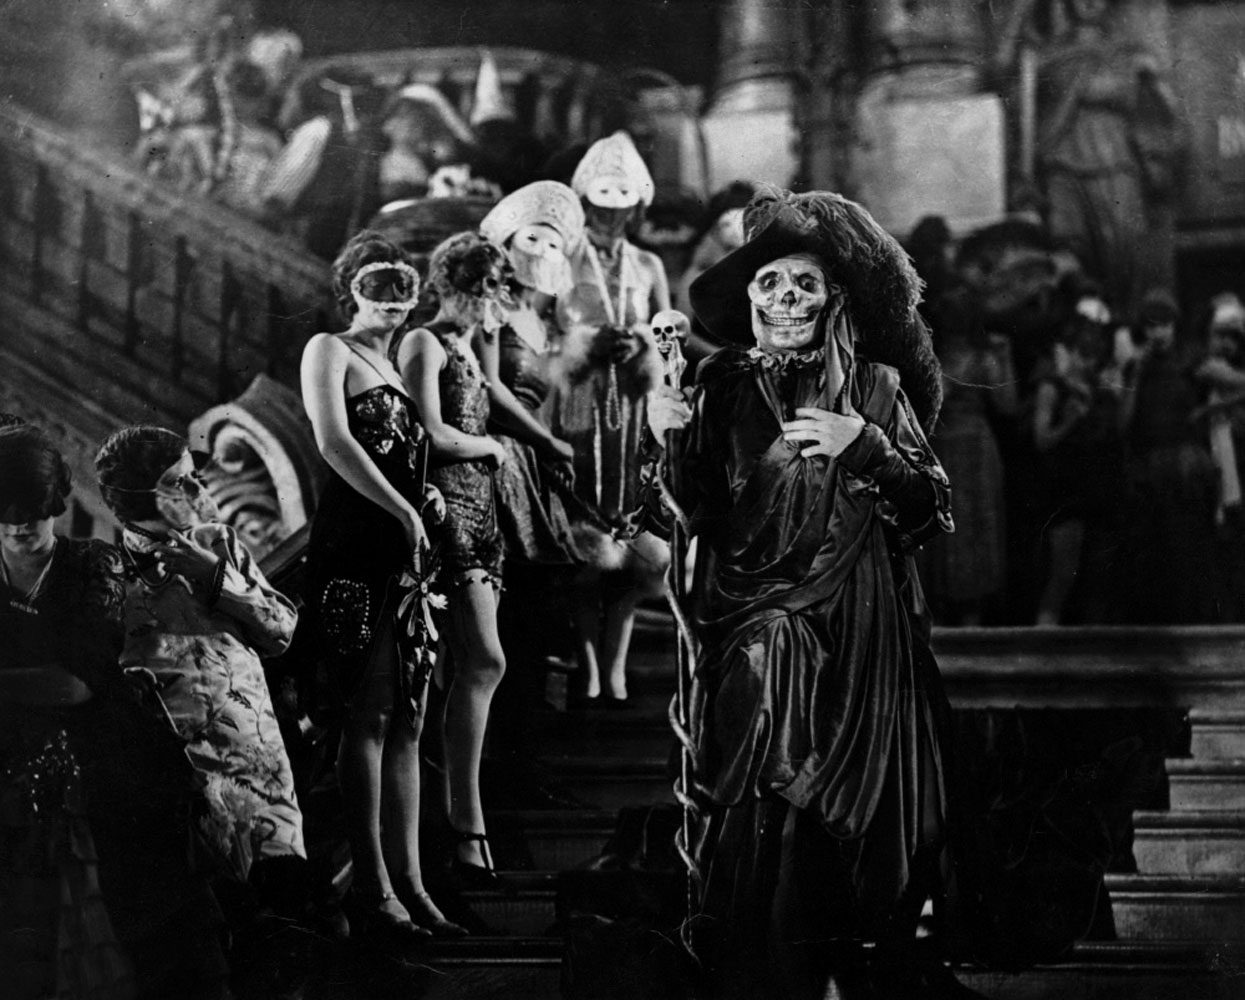 Silent Film Benefit showcases 'The Phantom of the Opera'